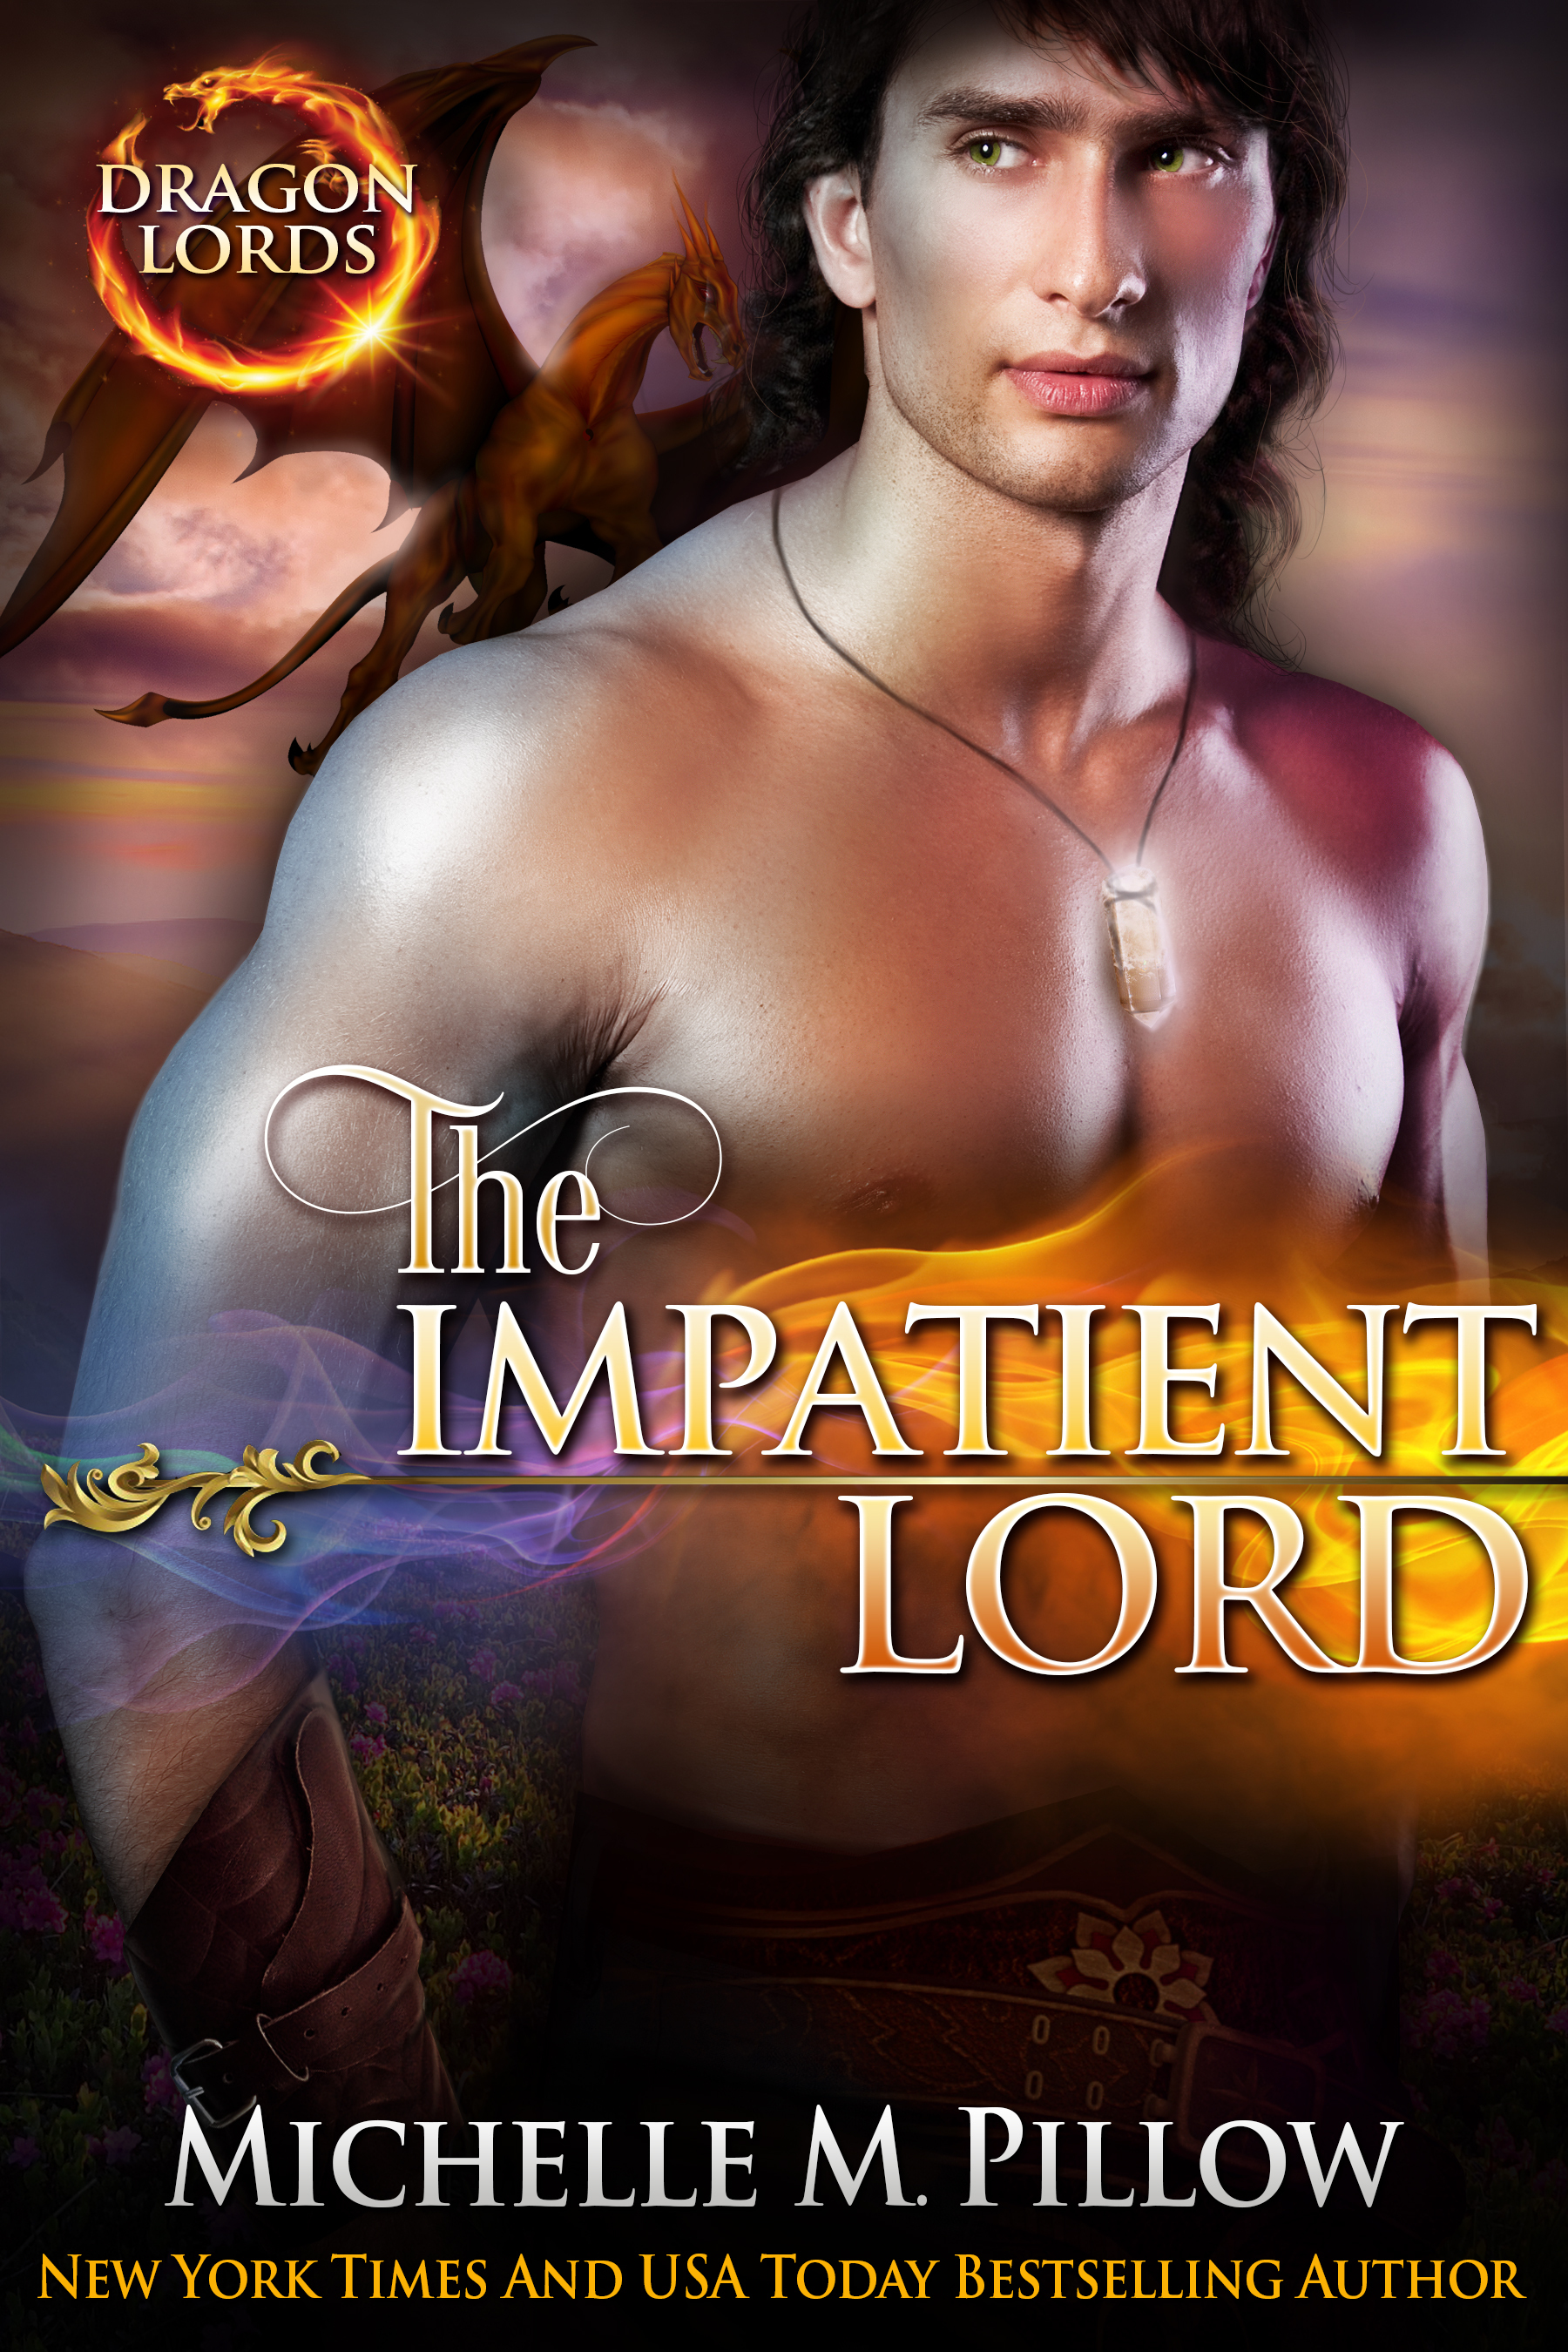 The Impatient Lord (Dragon Lords, #8) Michelle M. Pillow